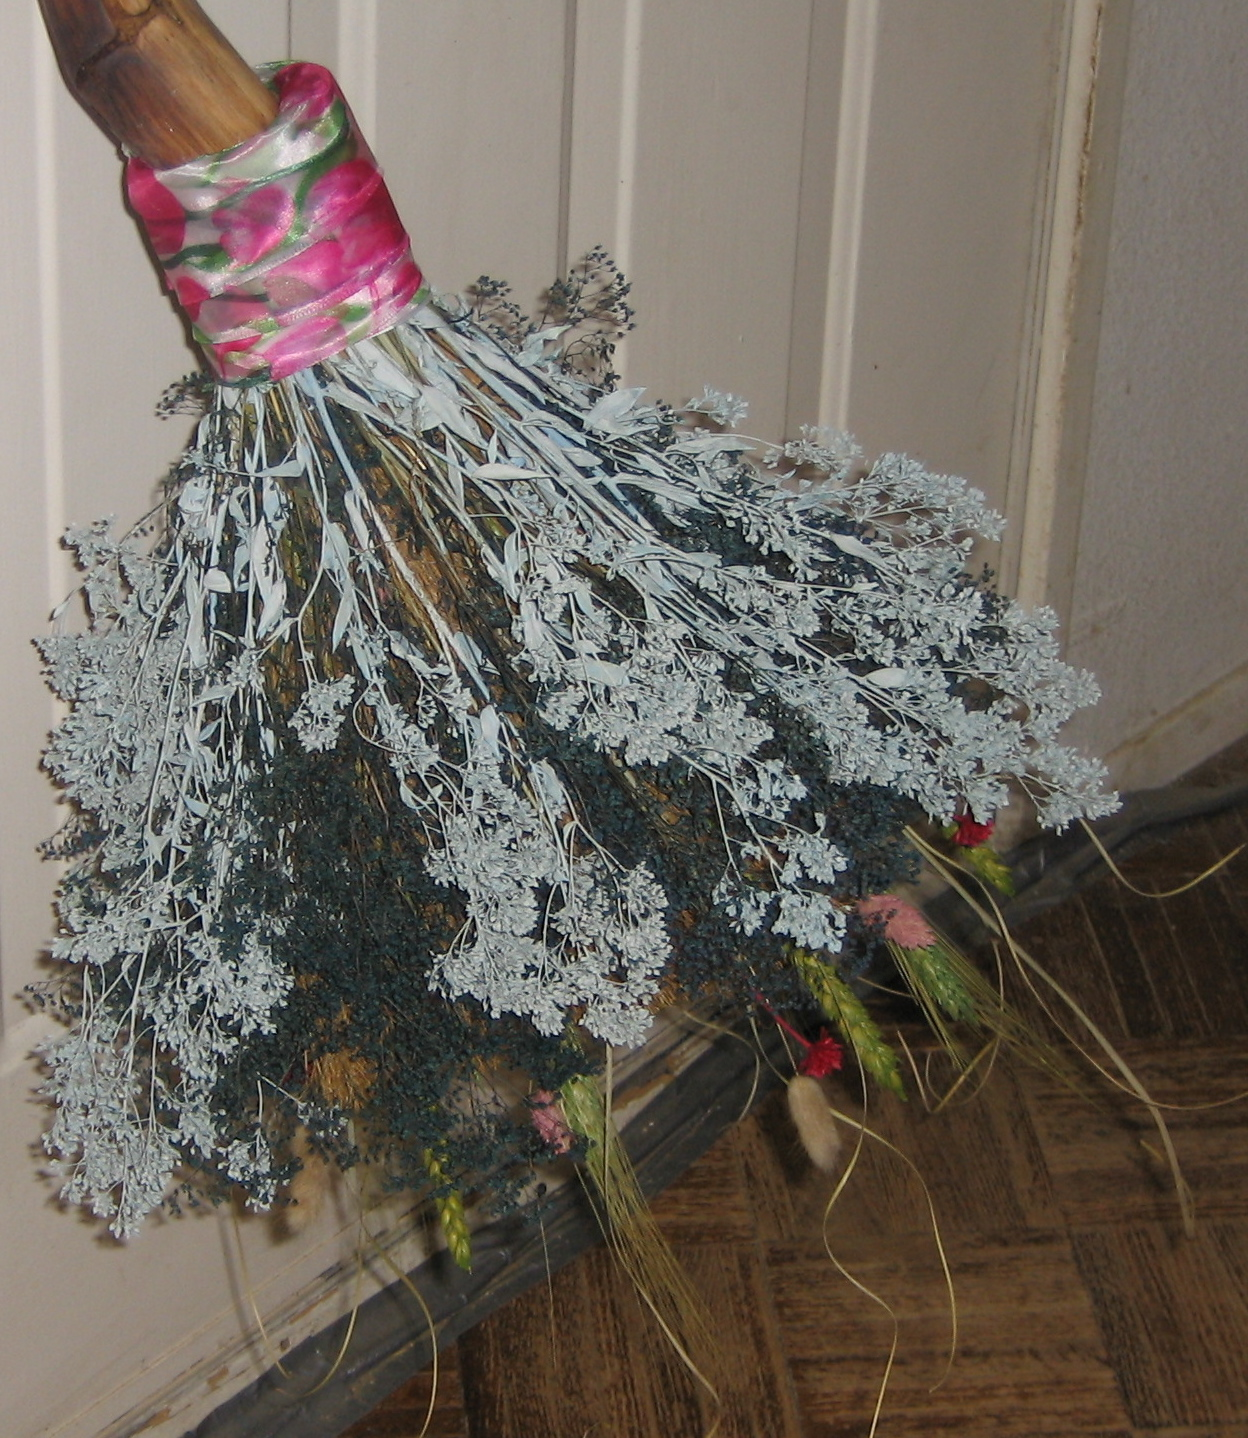 Ben Brades Handfasting June wedding brooms Custom Made Broom Quote Form Is there any way to inscribe their first names and their wedding date on the broom I look forward to hearing from